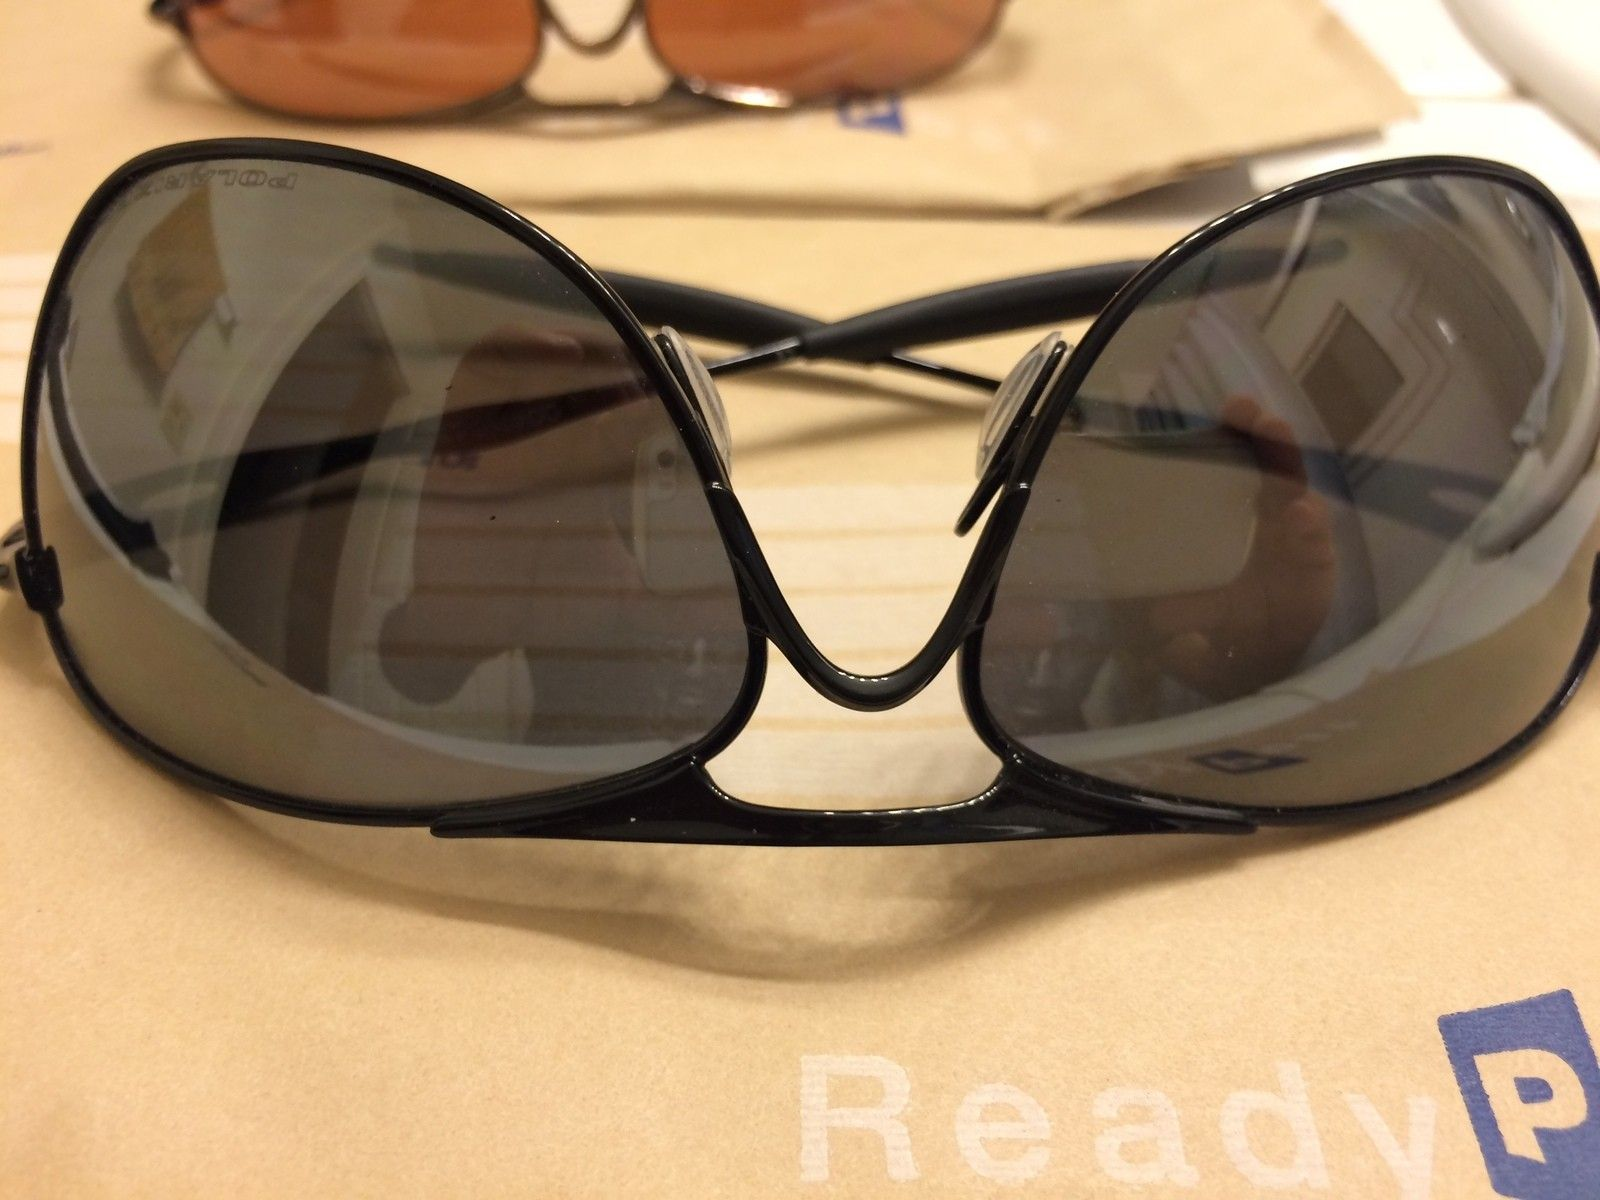 ac9e807f71 Used Oakley Crosshair For Sale Canada